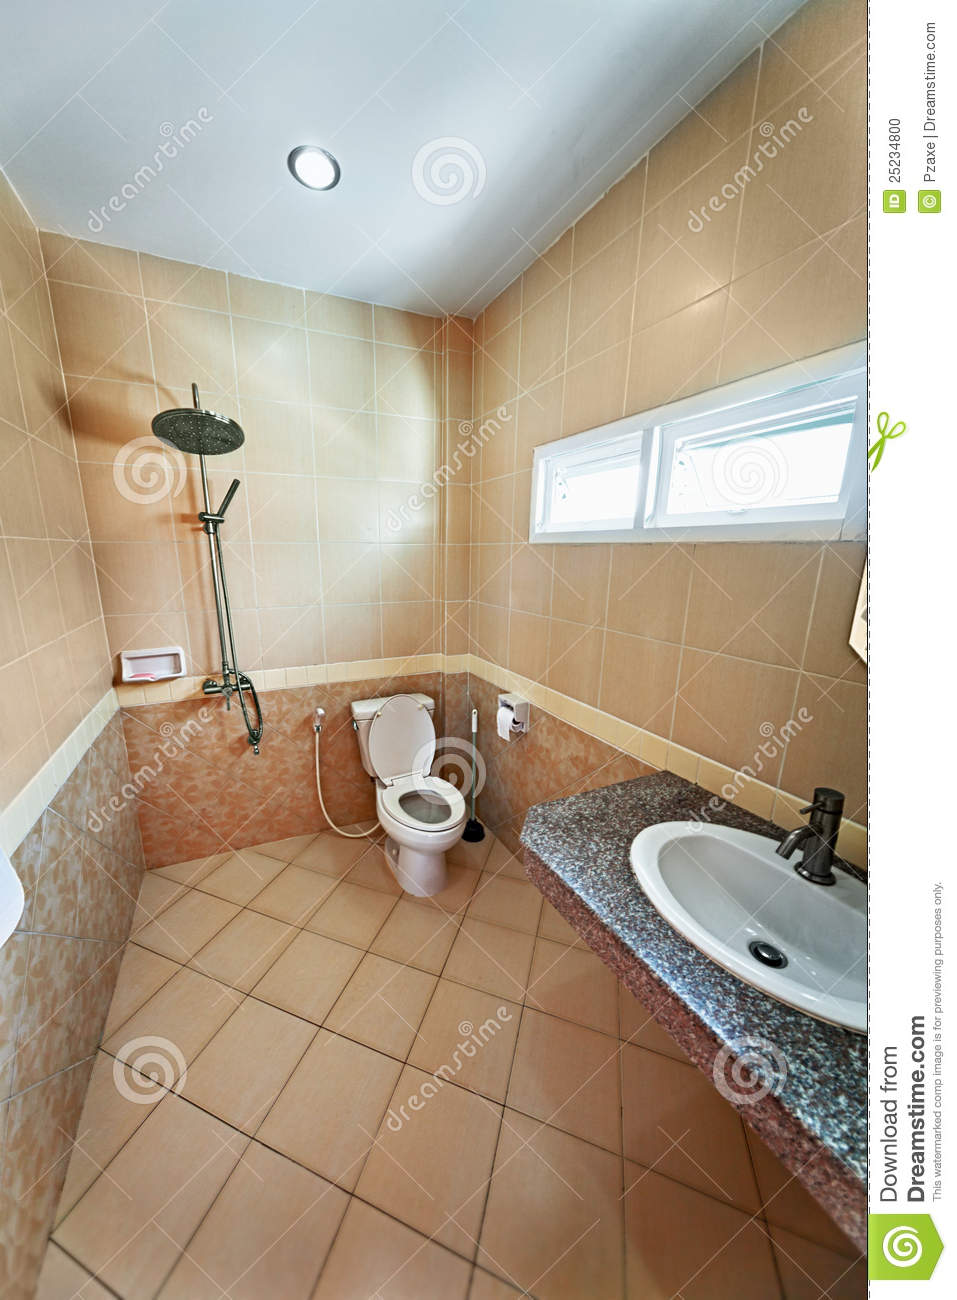 Iinterior of beige bathroom with shower stock photo for Salle de bain moderne rouge